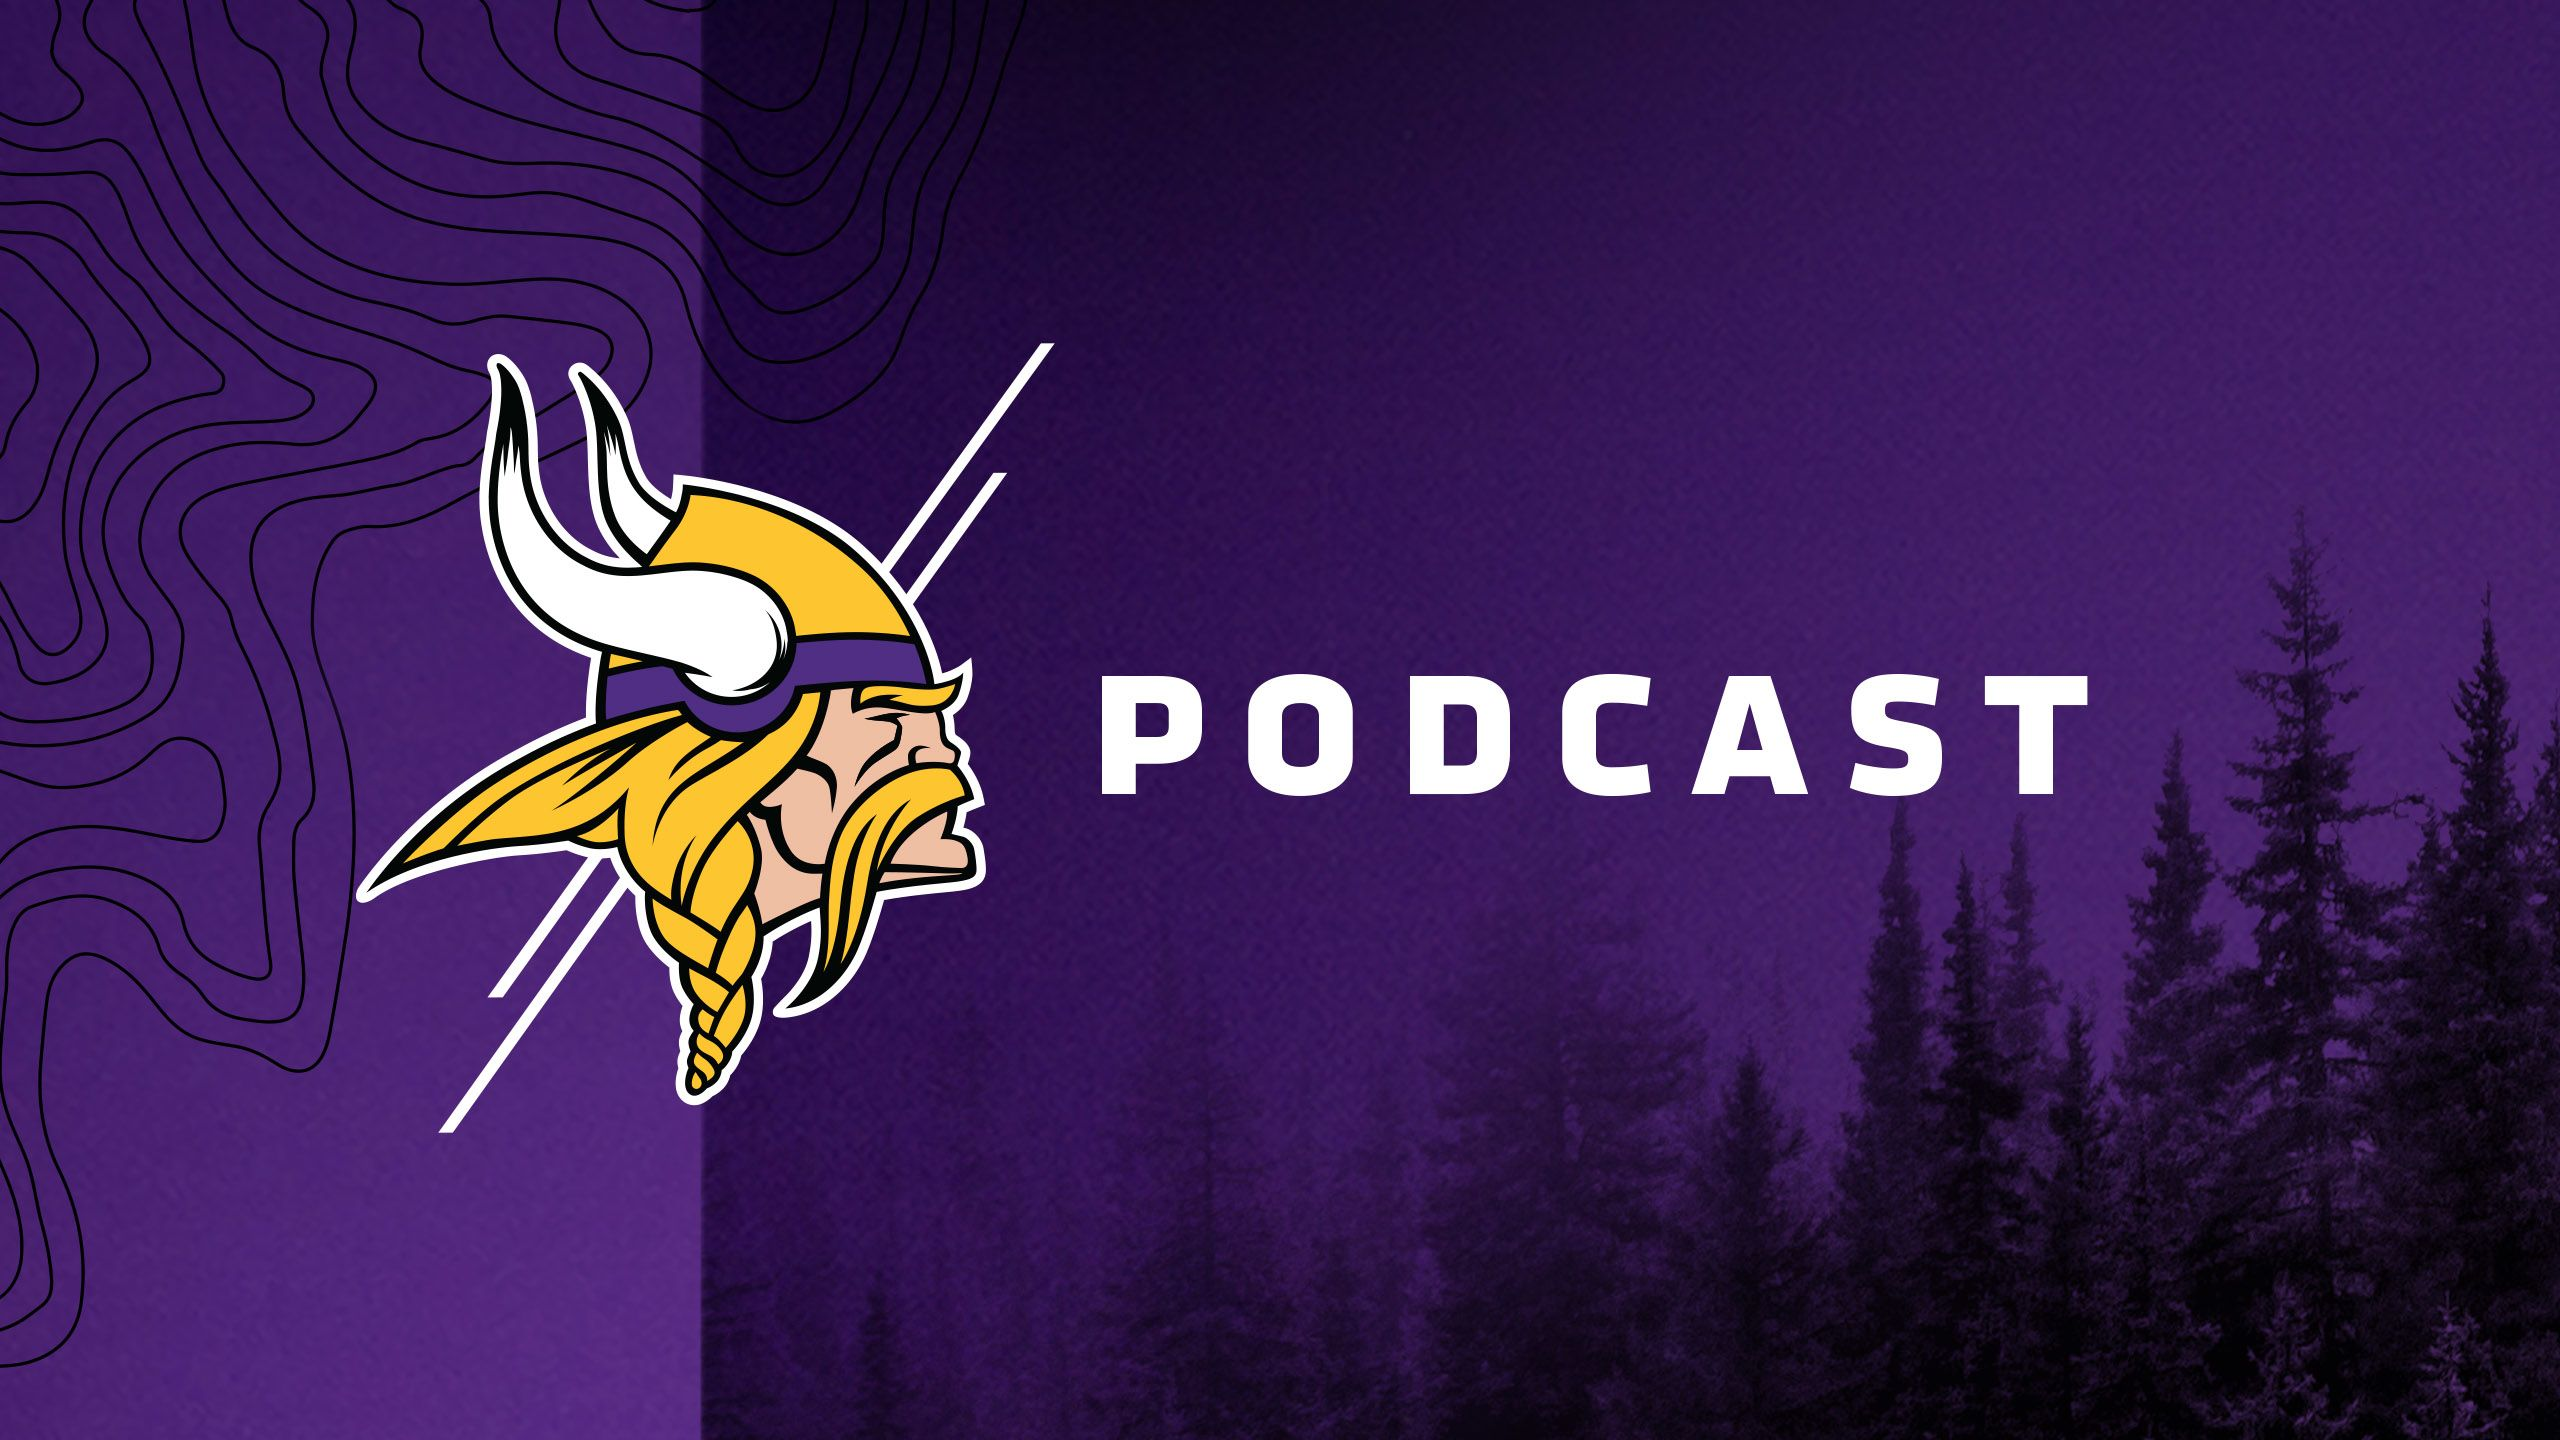 The Minnesota Vikings Podcast